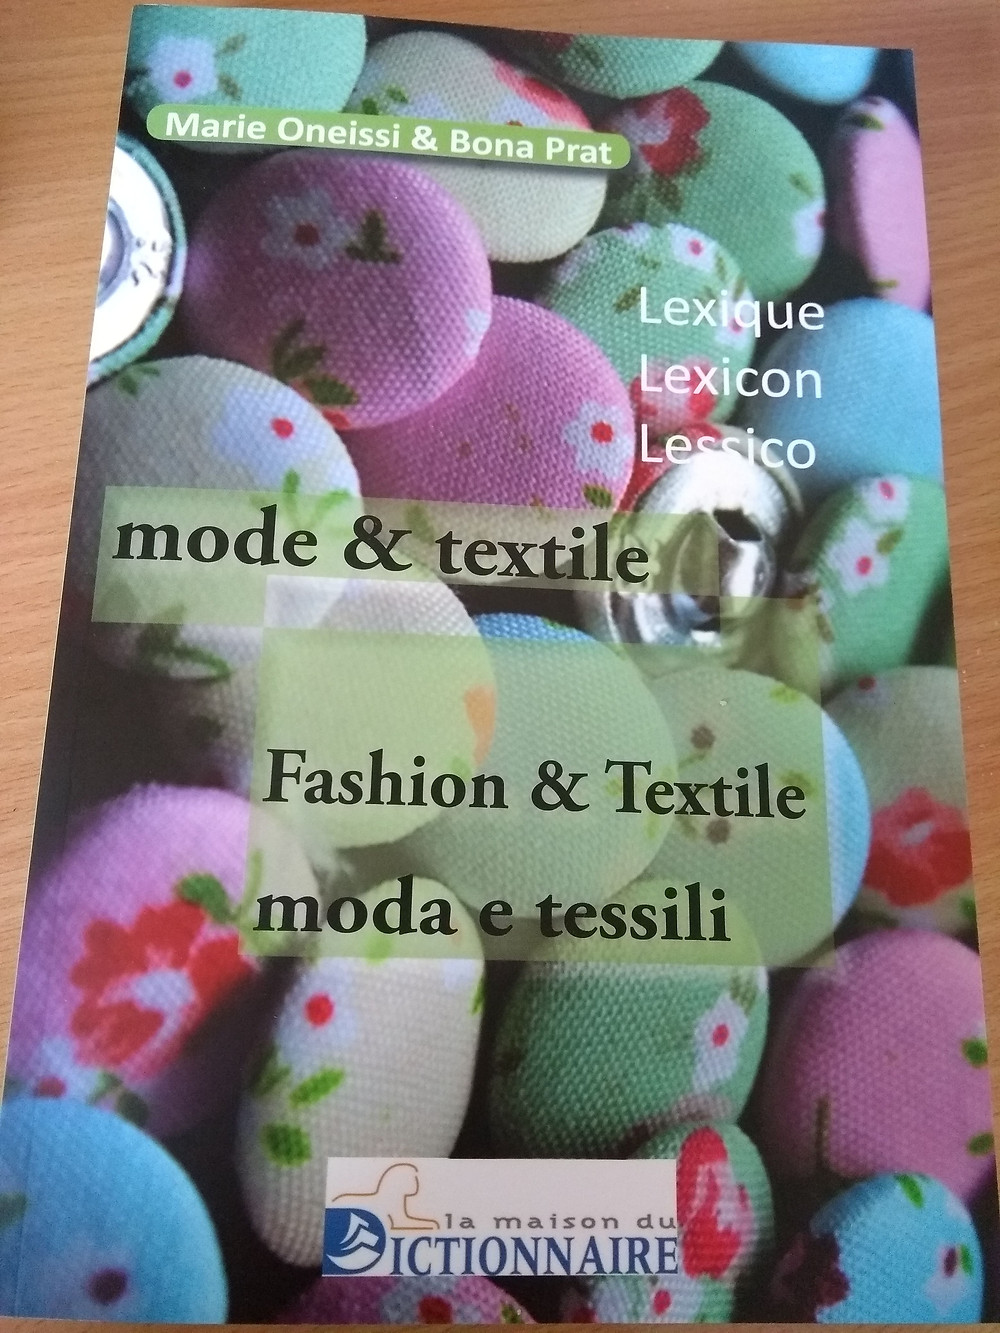 My copy of the Trilingual Glossary of Fashion & Textile dictionary